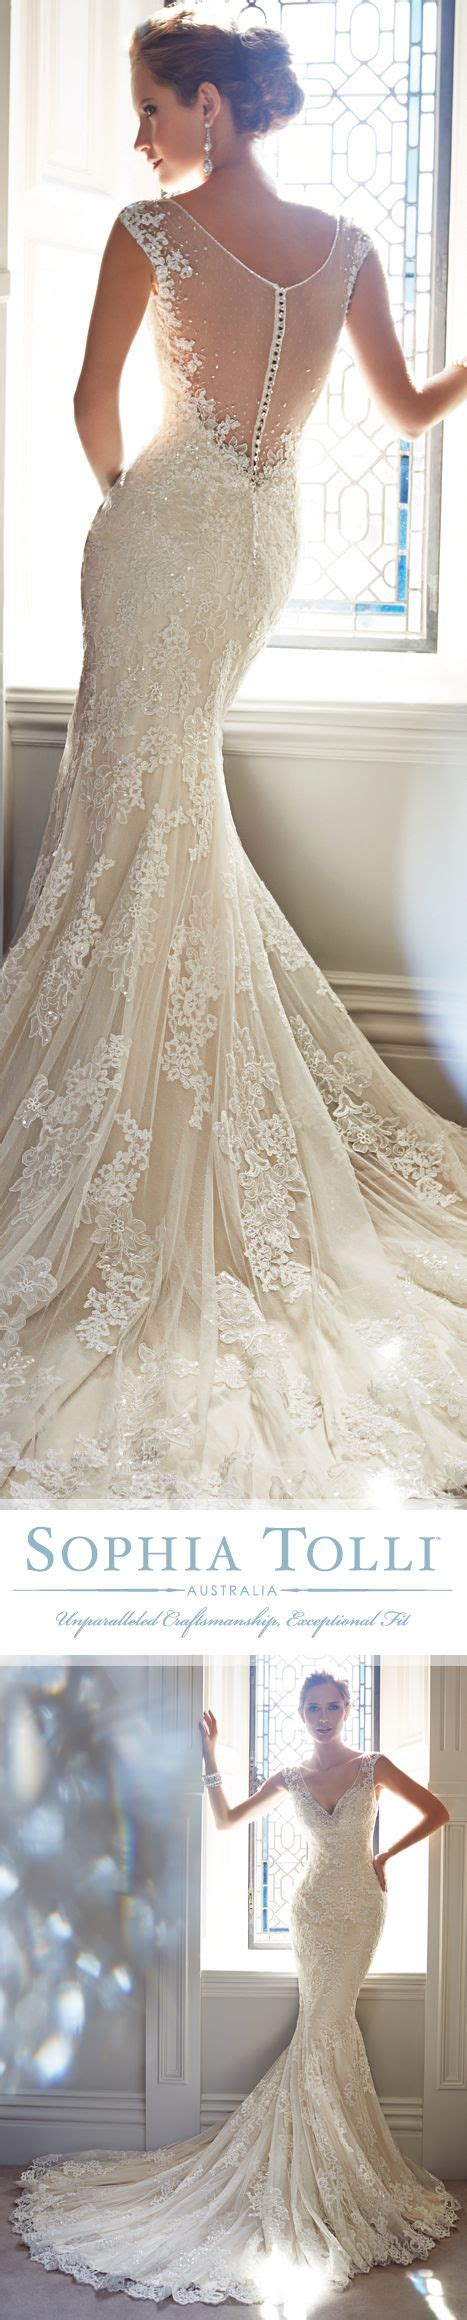 Dress Rajut No Iner style no y21432 leigh wedding dresses 2014 collection enhance your and embrace your